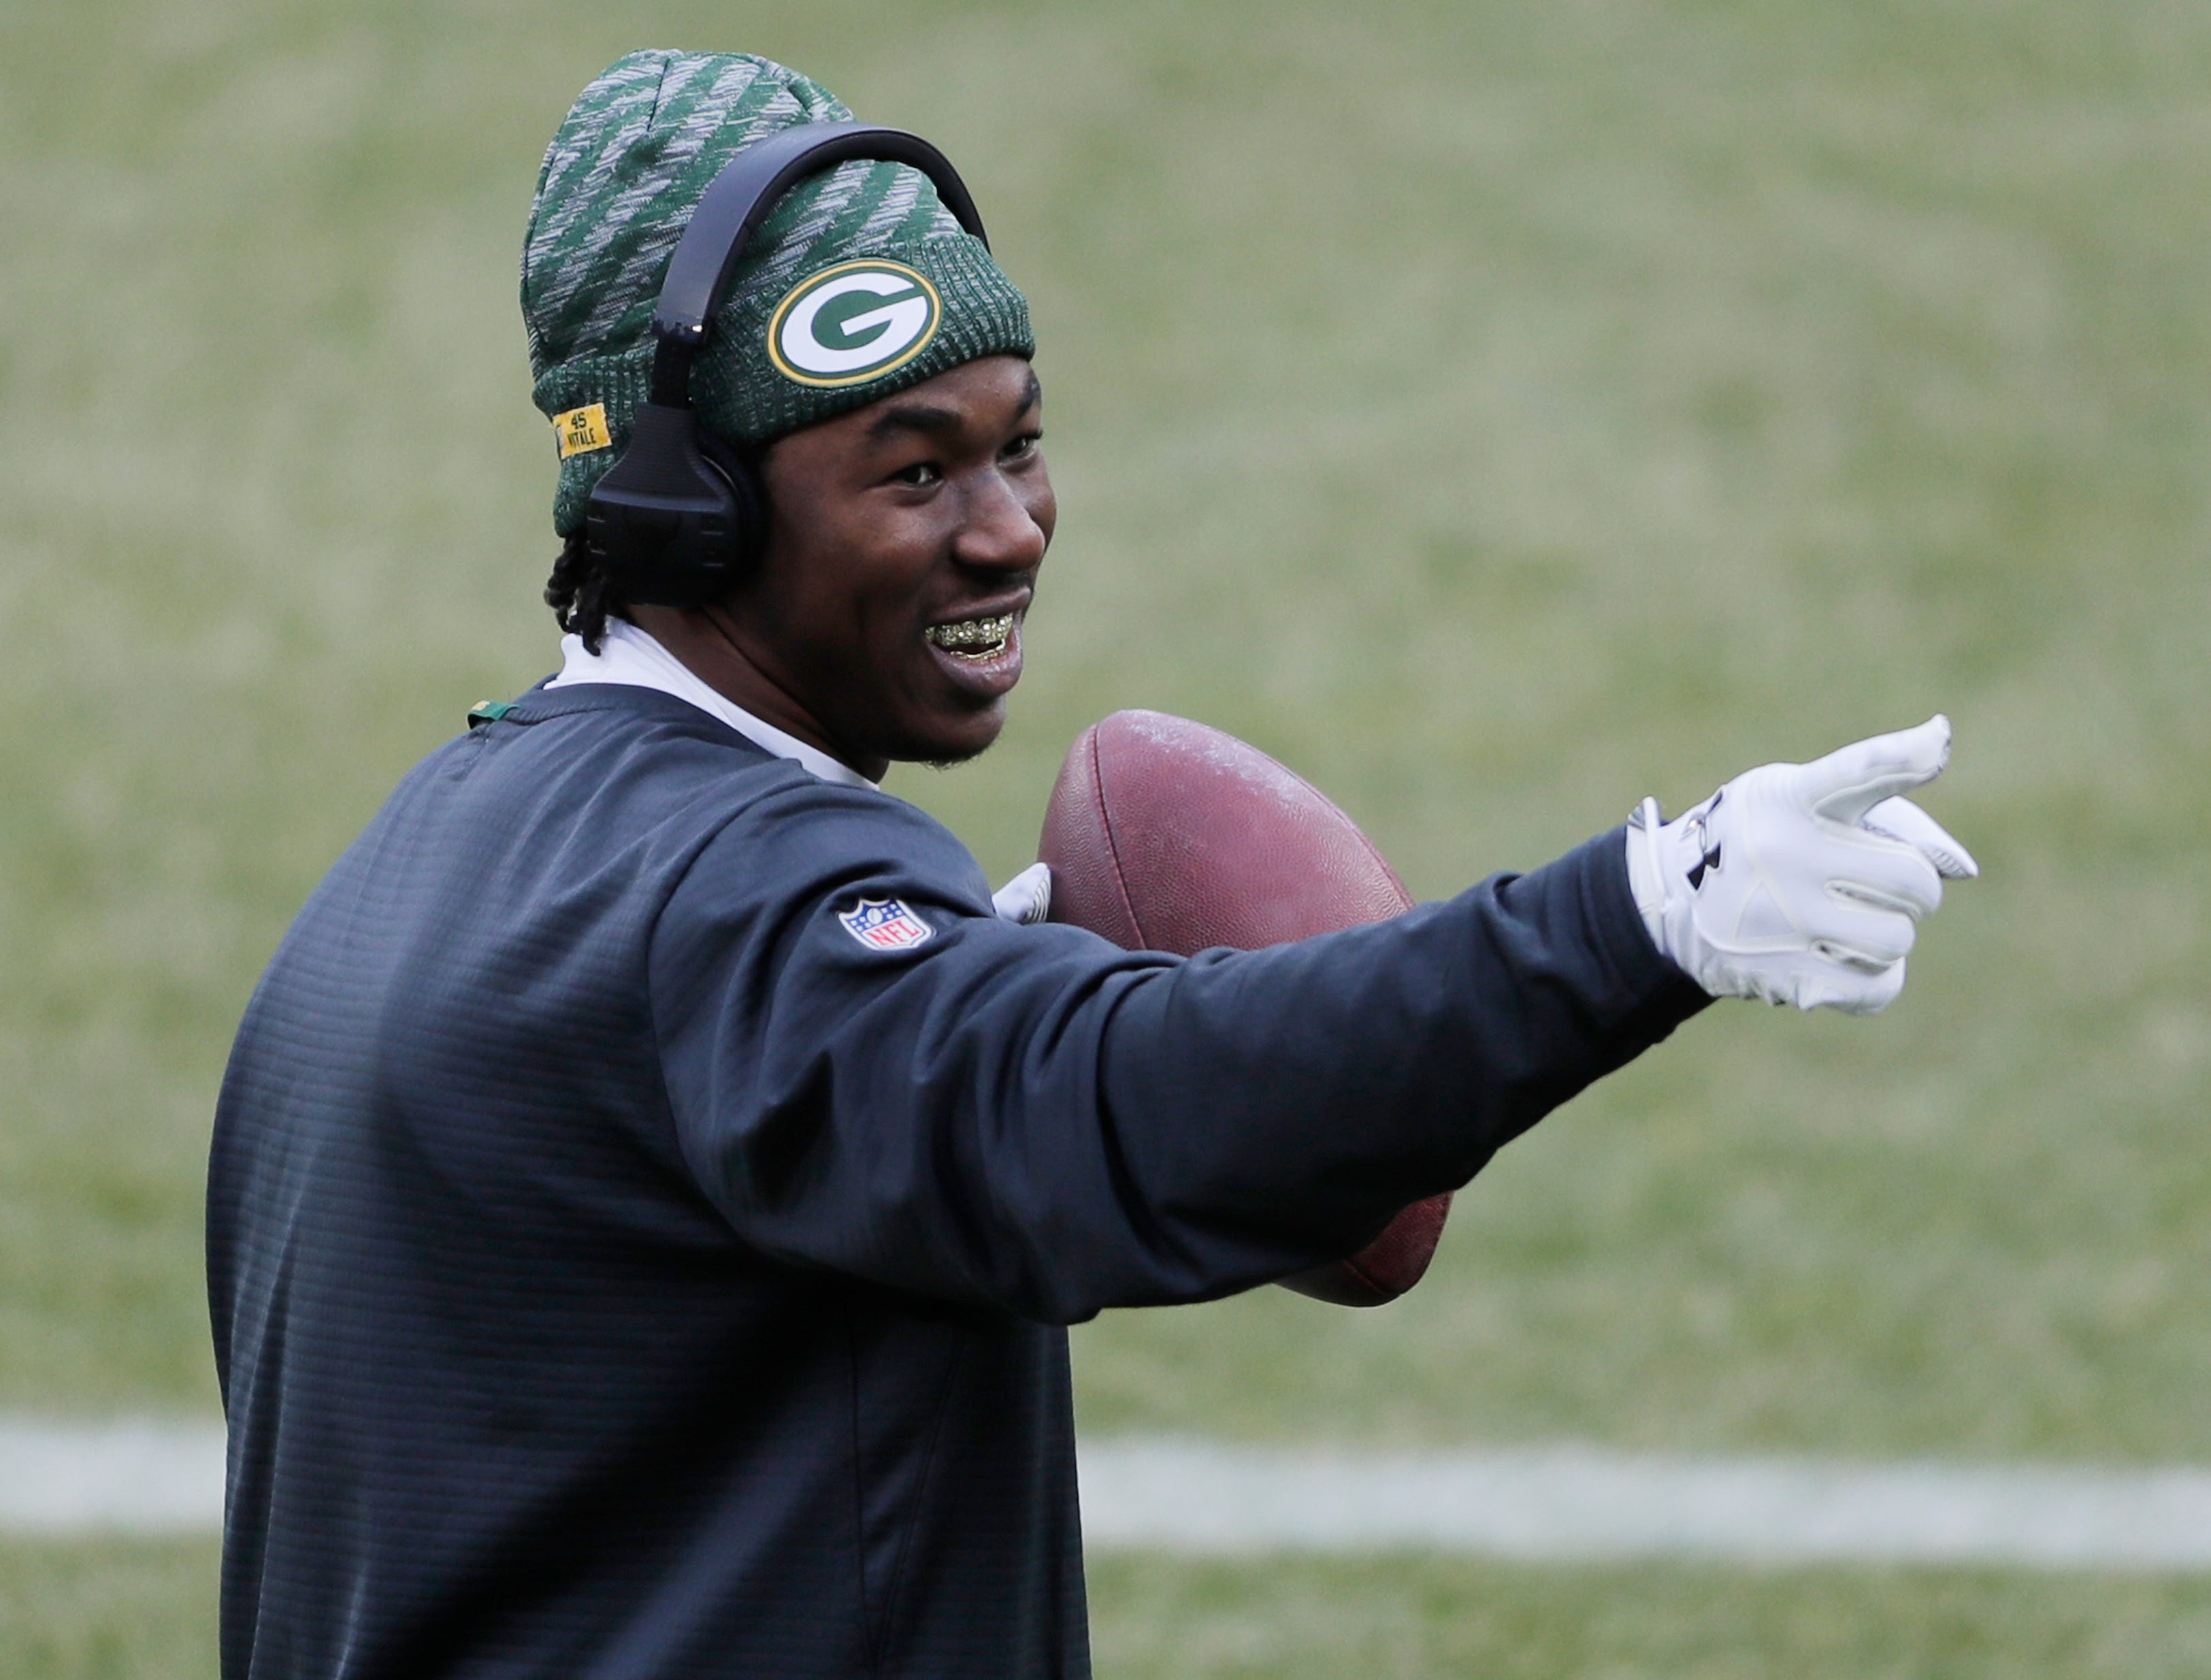 Green Bay Packers running back Jamaal Williams (30) plays catch with fans before kickoff against the Detroit Lions at Lambeau Field on Sunday, December 30, 2018 in Green Bay, Wis.